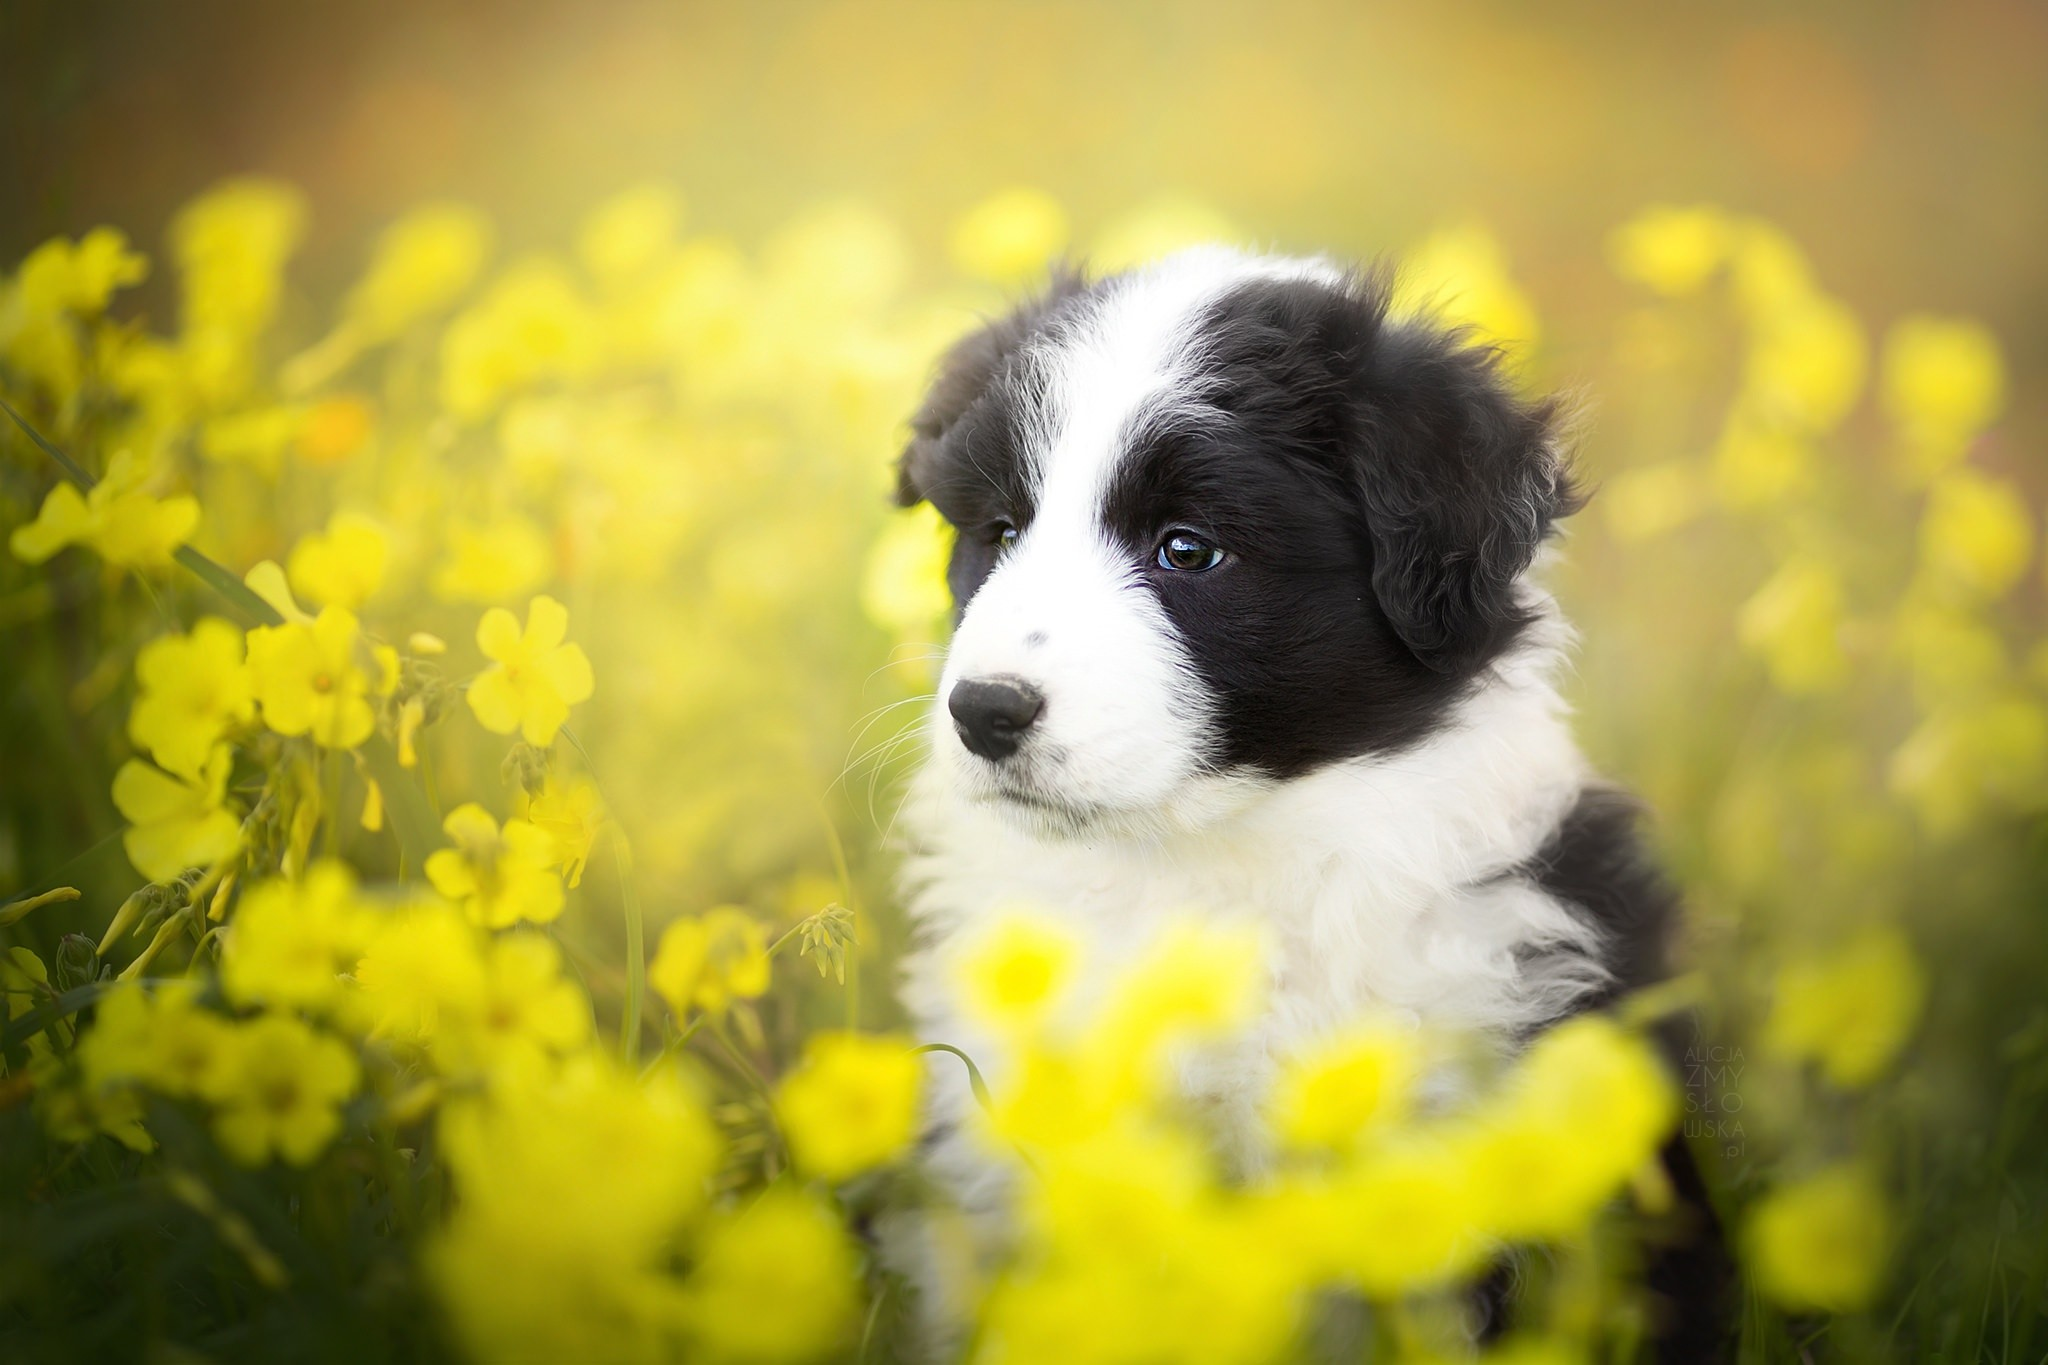 Cute Labrador Puppy Wallpaper Puppies And Flowers Wallpapers 63 Images